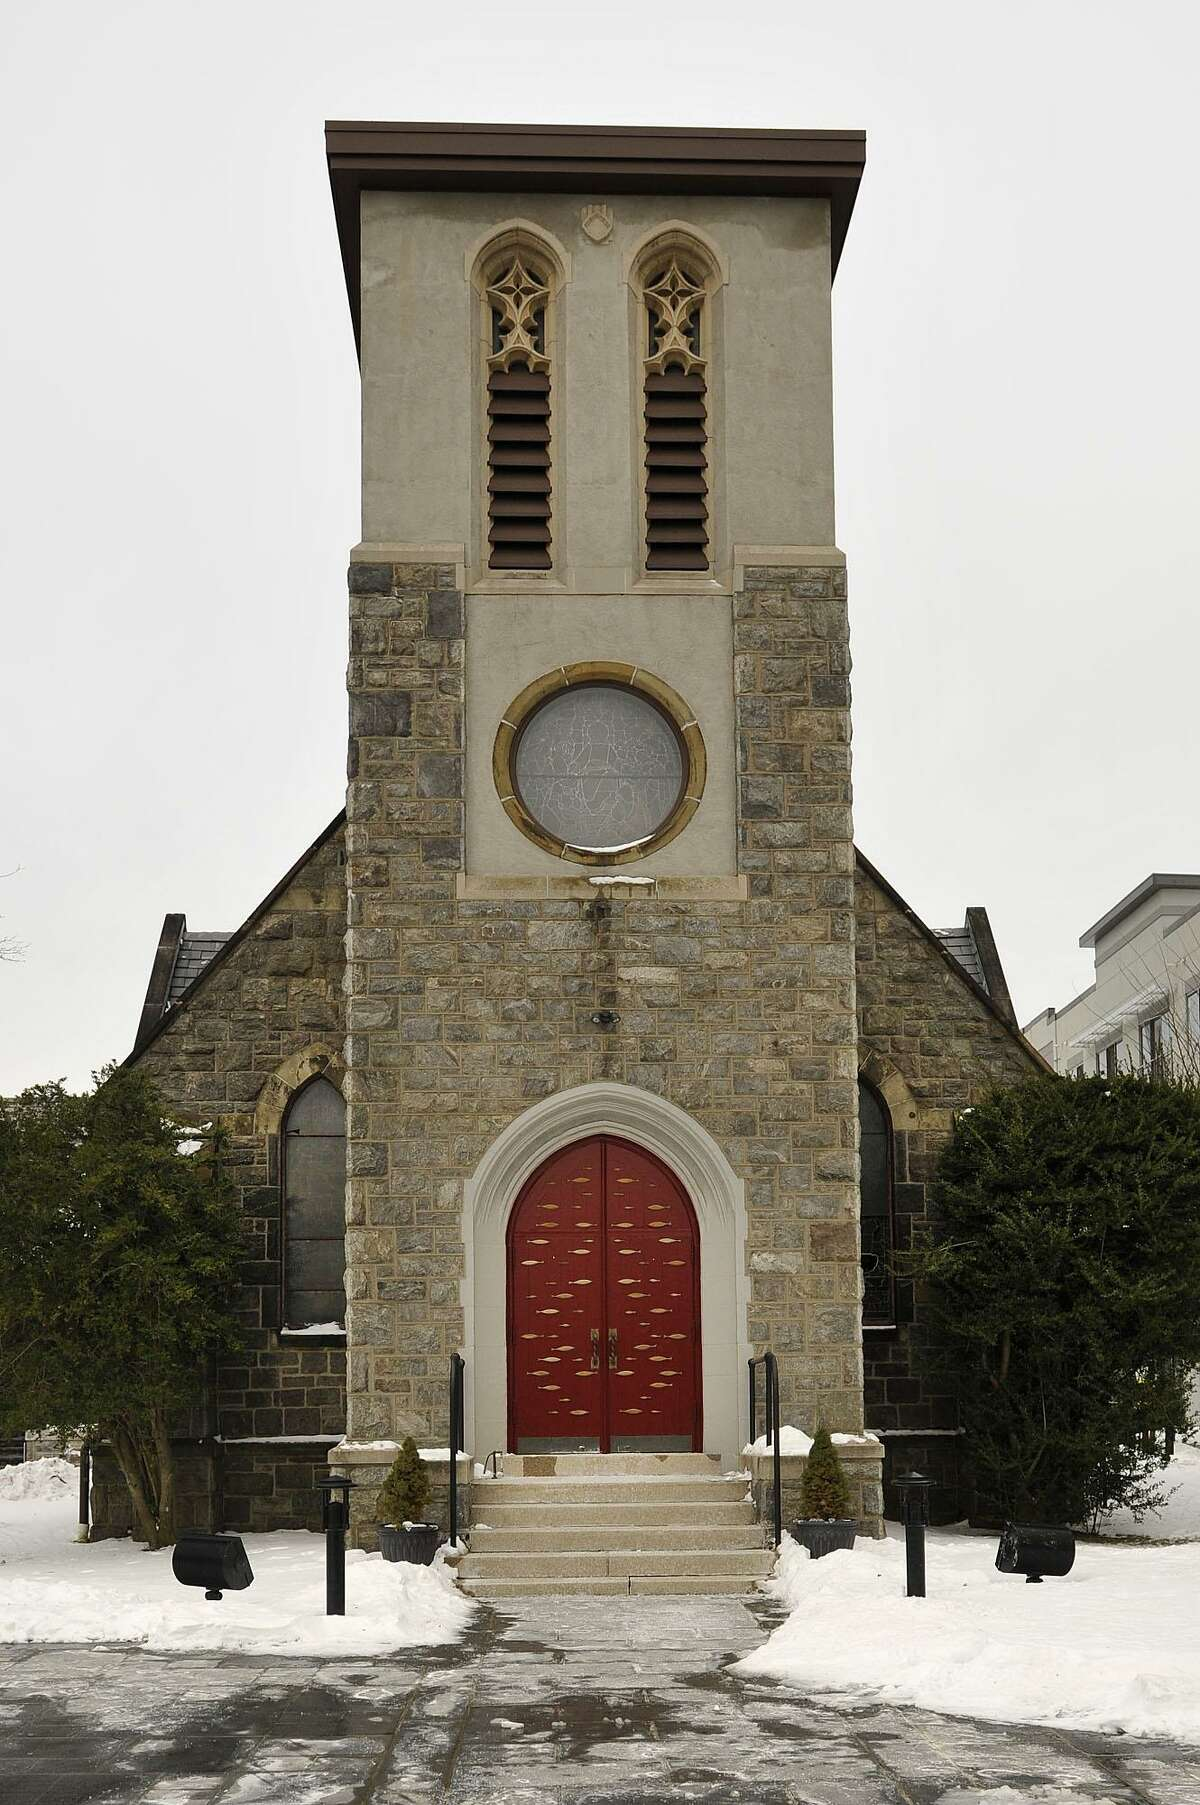 The exterior of St. Andrew's Episcopal Church on Washington Boulevard in Stamford, Conn., is seen on Thursday, Jan. 29, 2015.